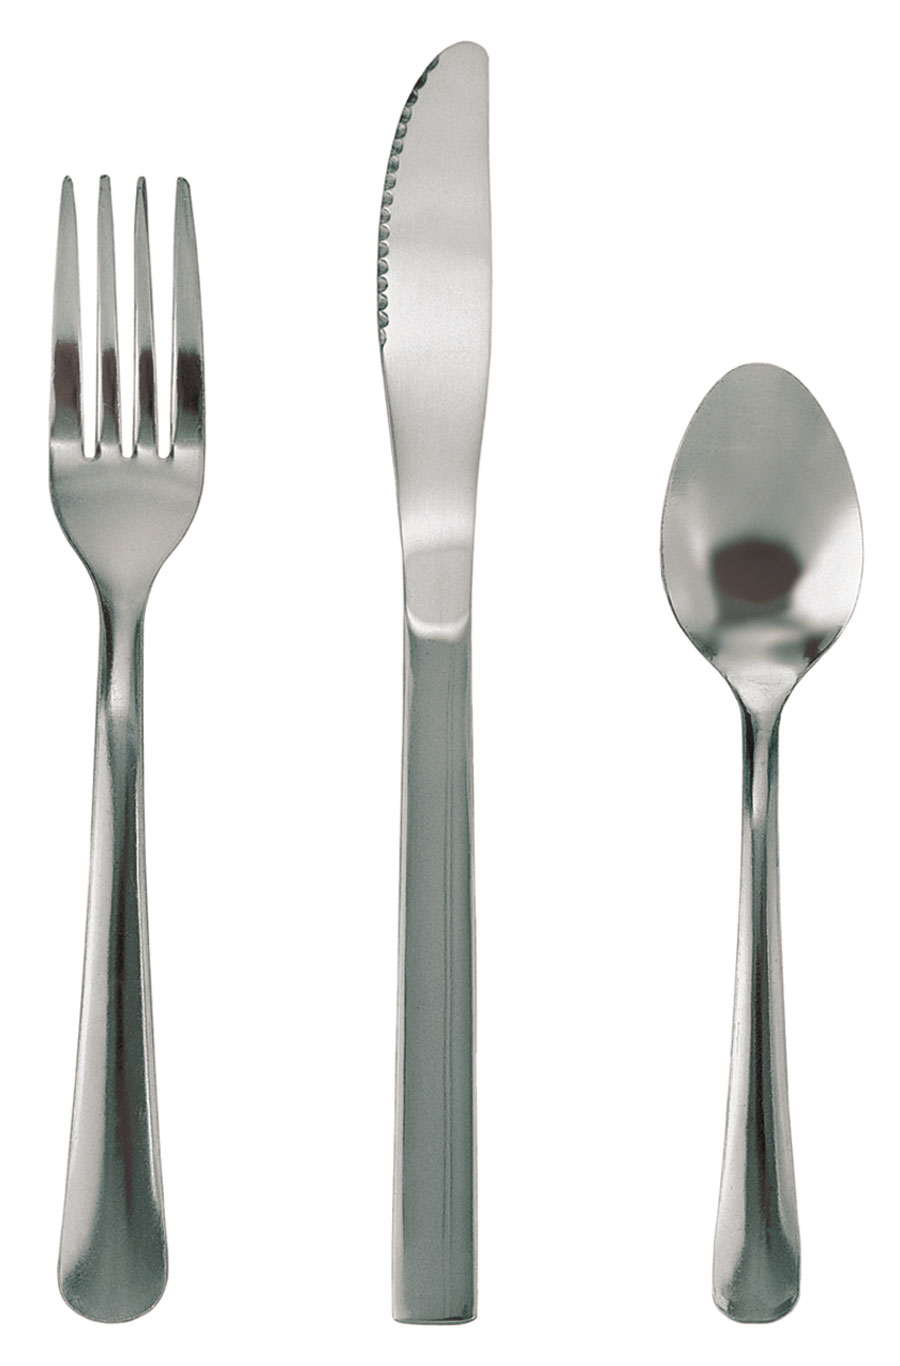 Update International WM-37 Medium Weight Windsor Oyster Fork - 1 doz